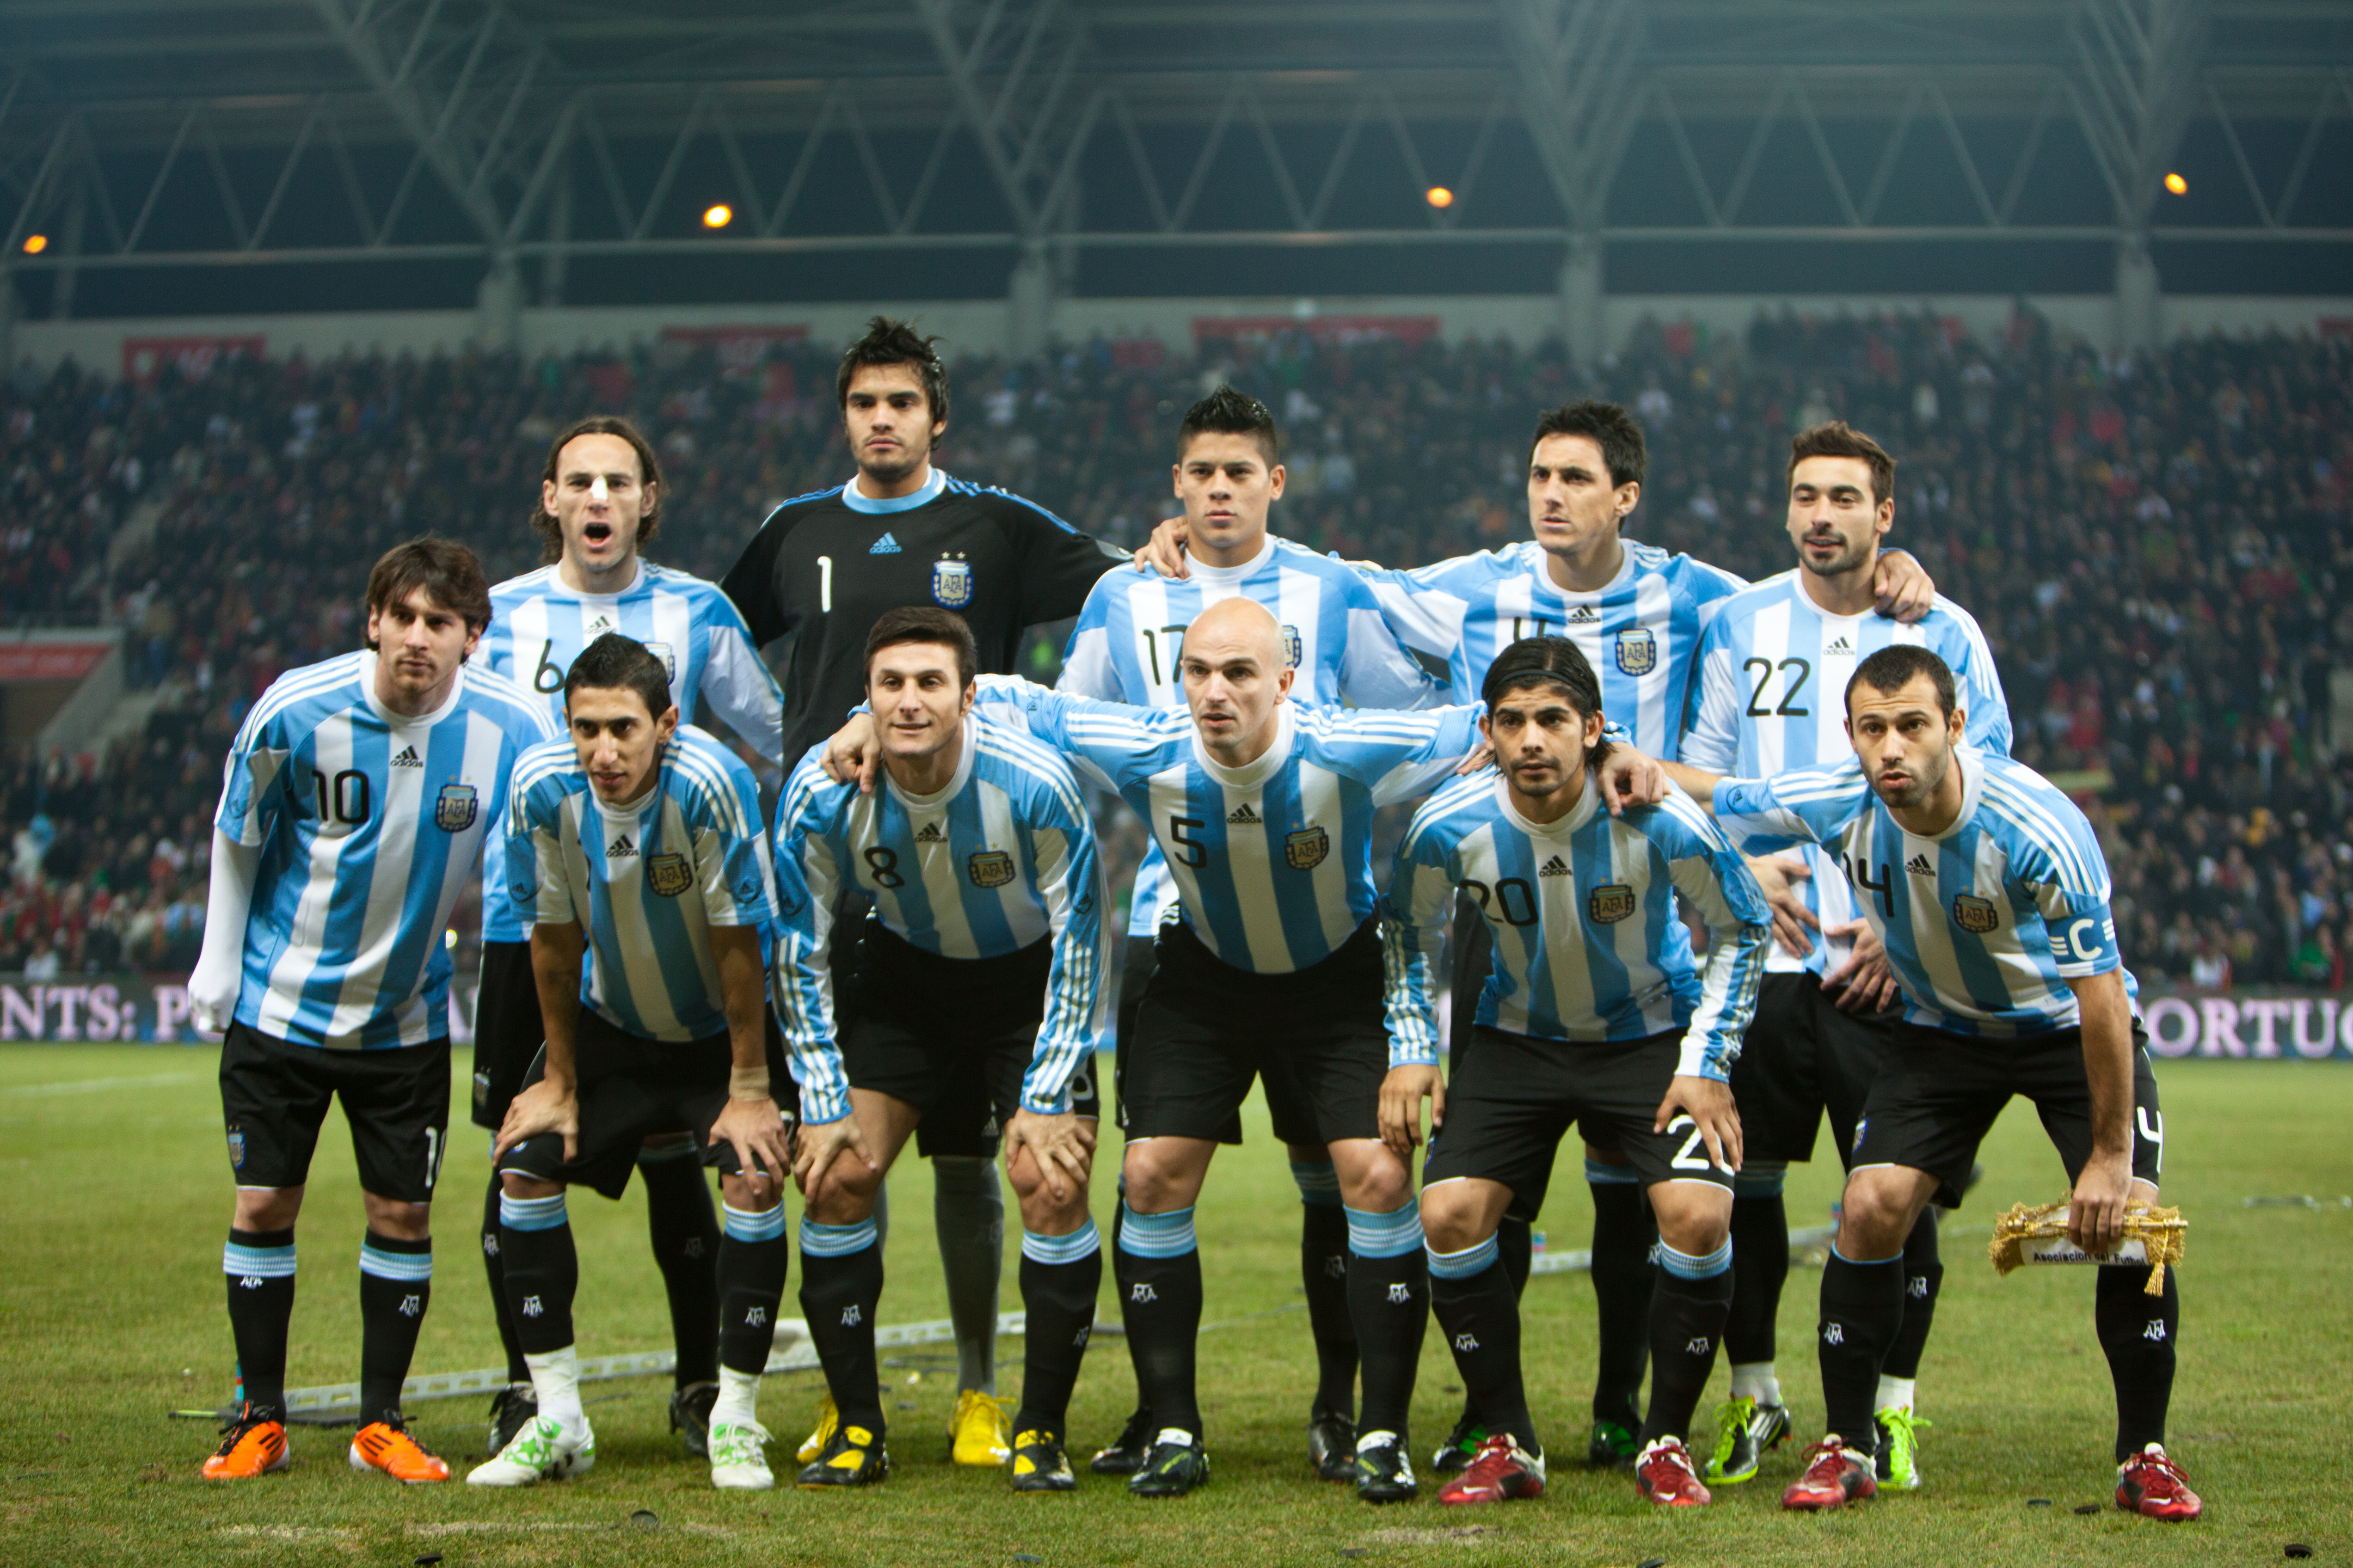 Nice Images Collection: Argentina National Football Team Desktop Wallpapers